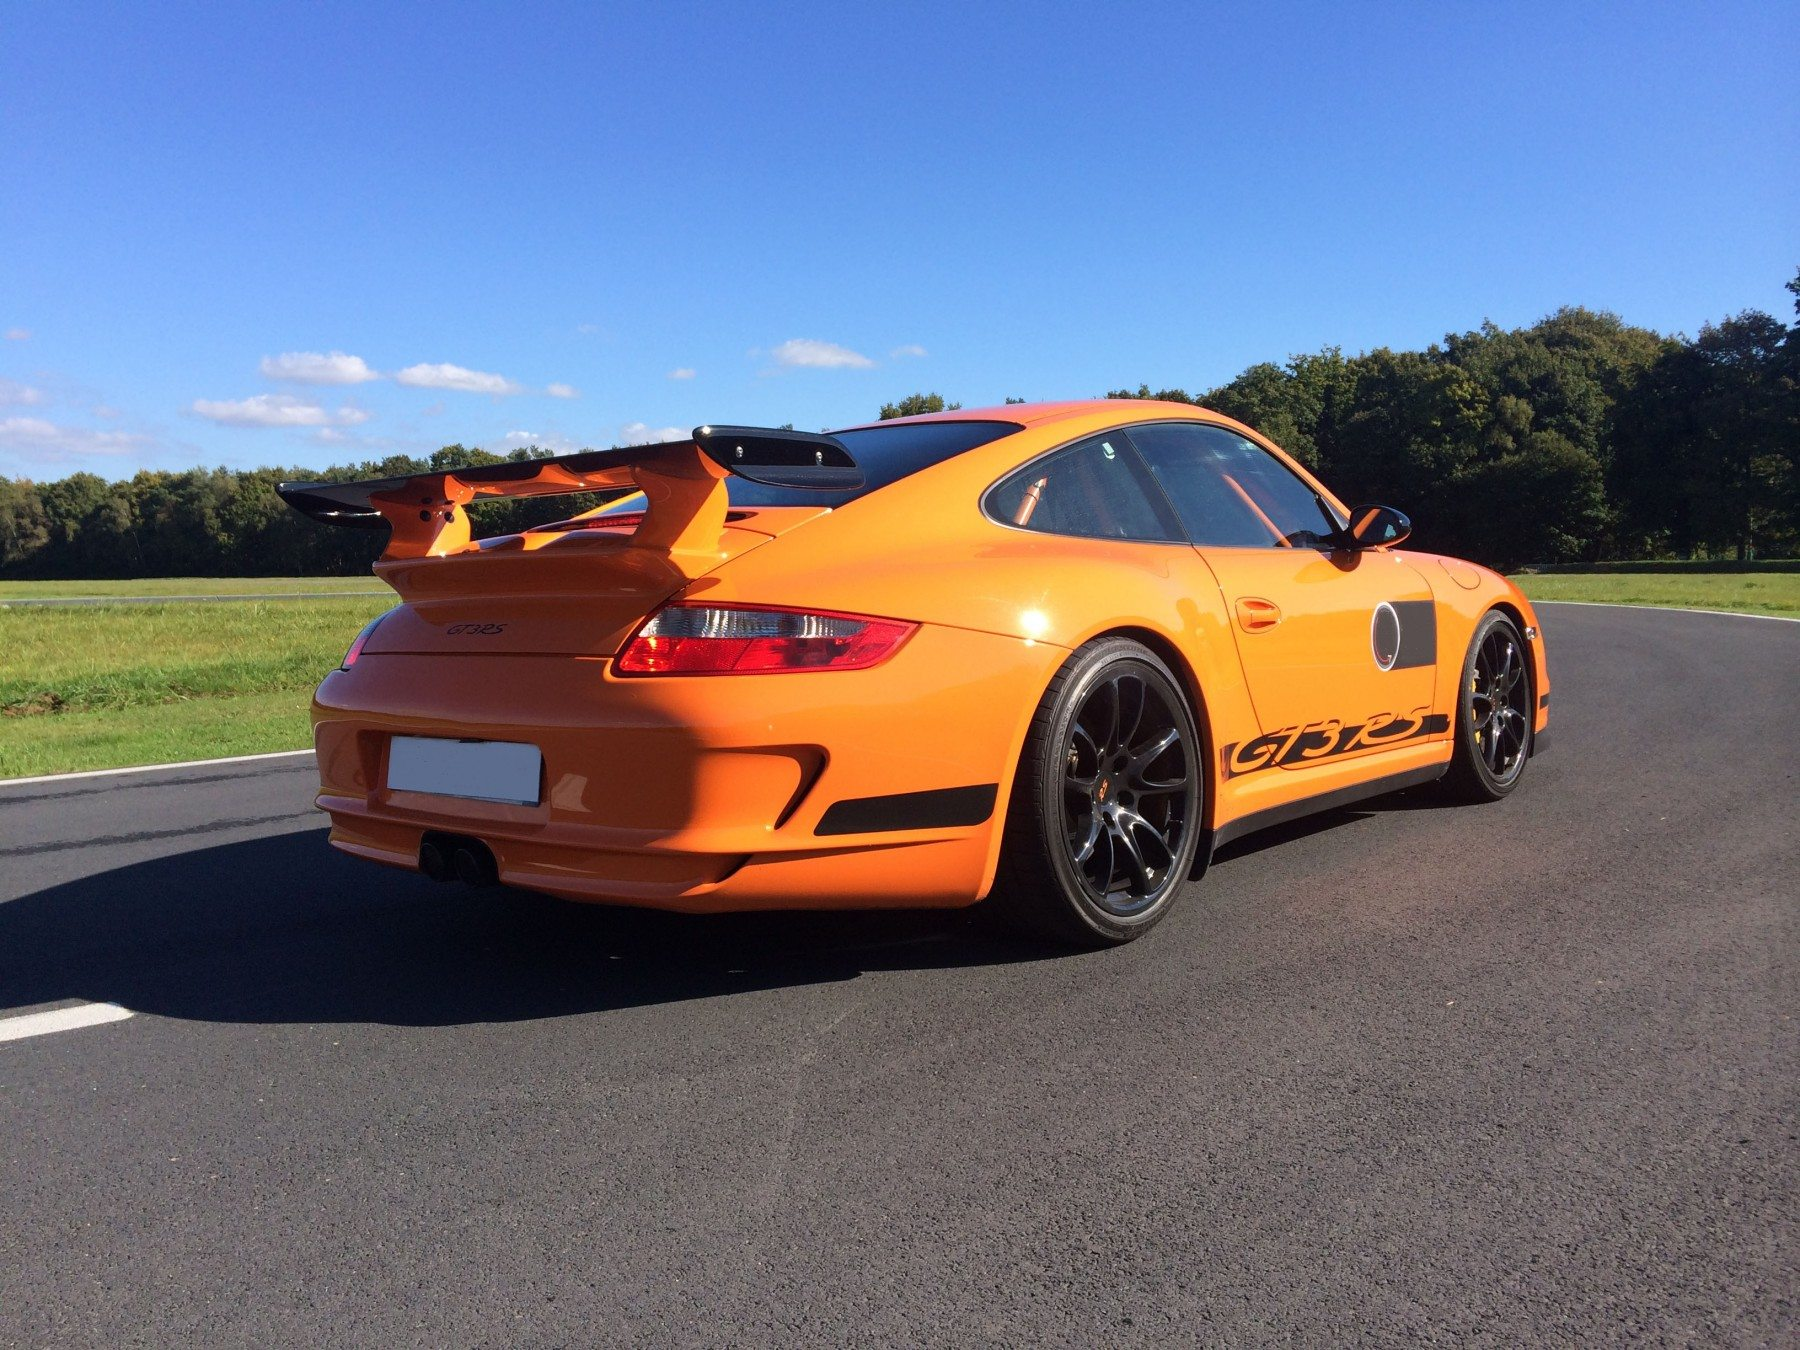 pilotage porsche gt3 sur route pr s de nantes. Black Bedroom Furniture Sets. Home Design Ideas